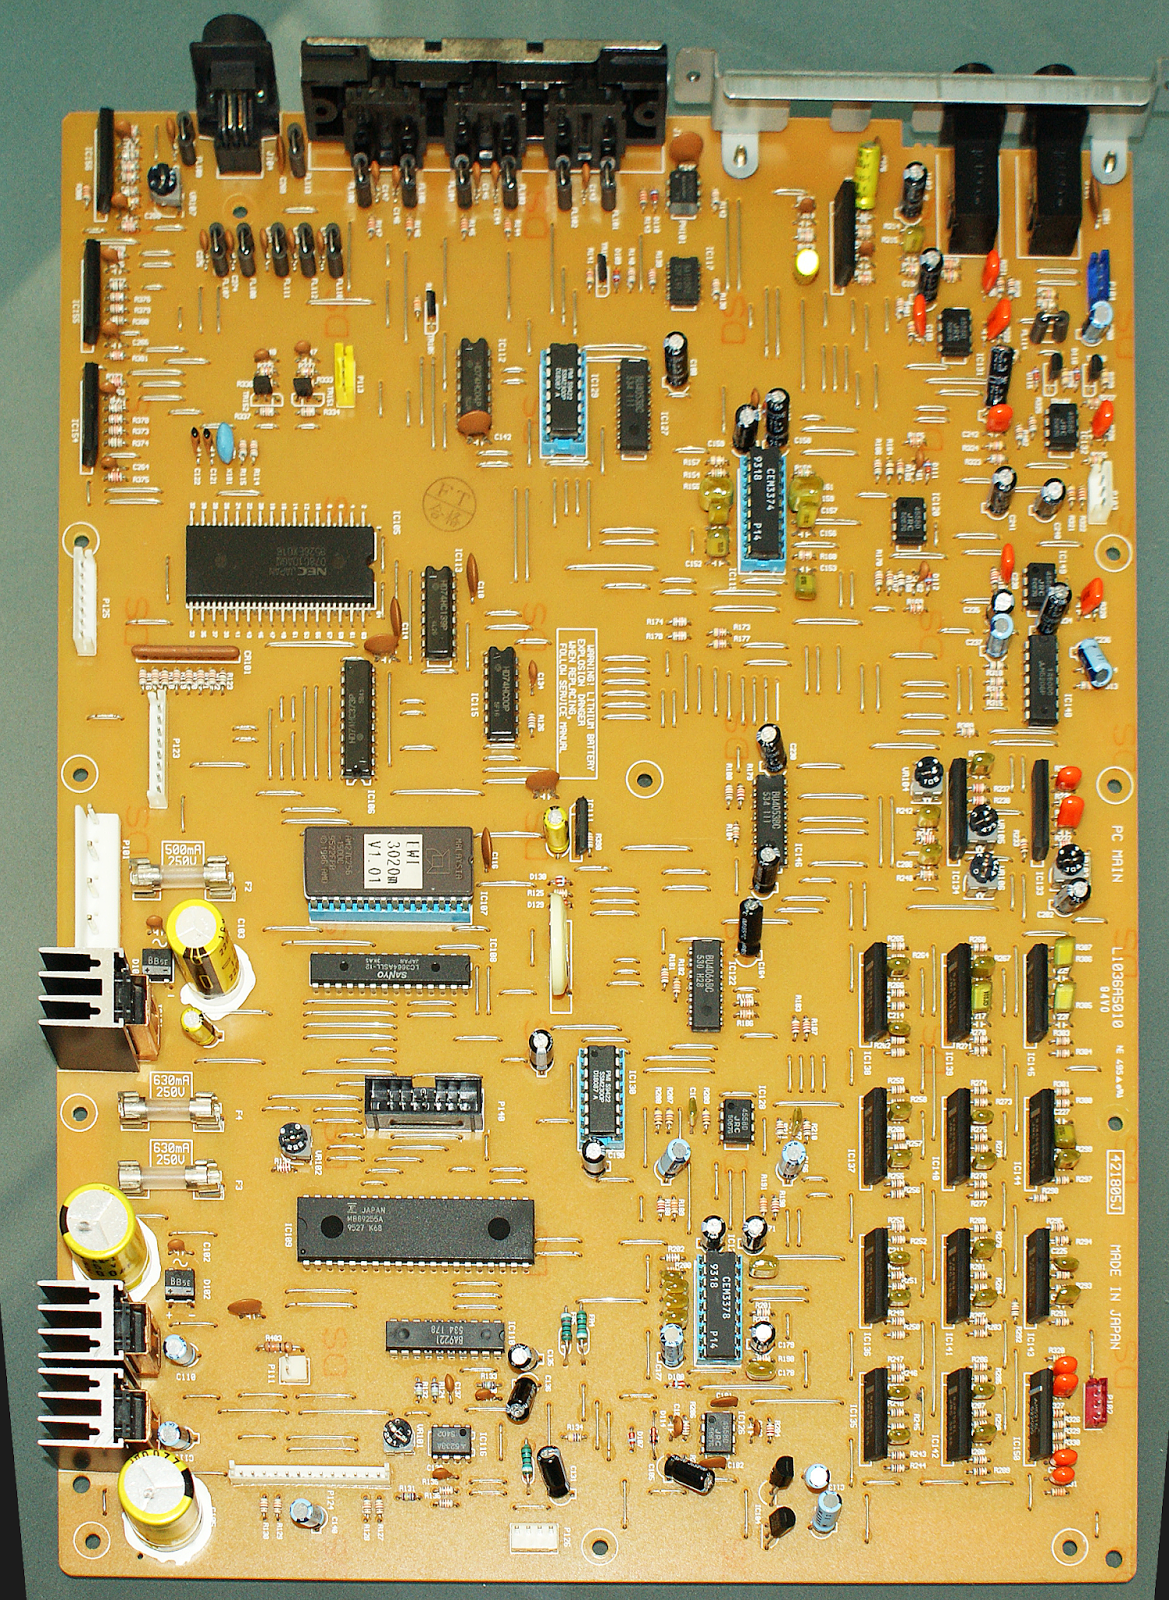 Akai EWI3020m Disassembly & PCB Pictures